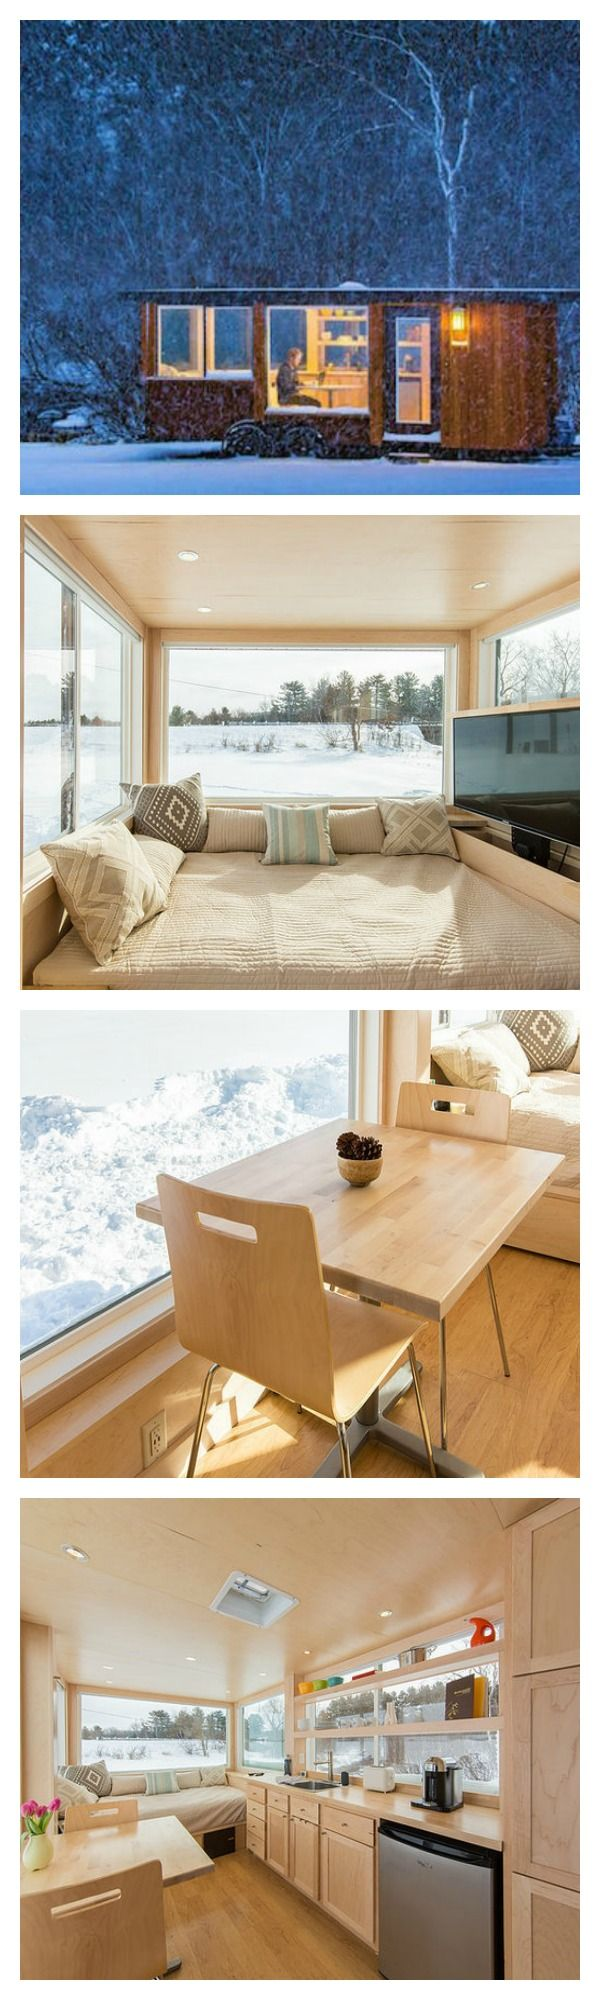 This cozy tiny house has modern finishings such as floor to ceiling windows that are perfect for watching the snow fall.